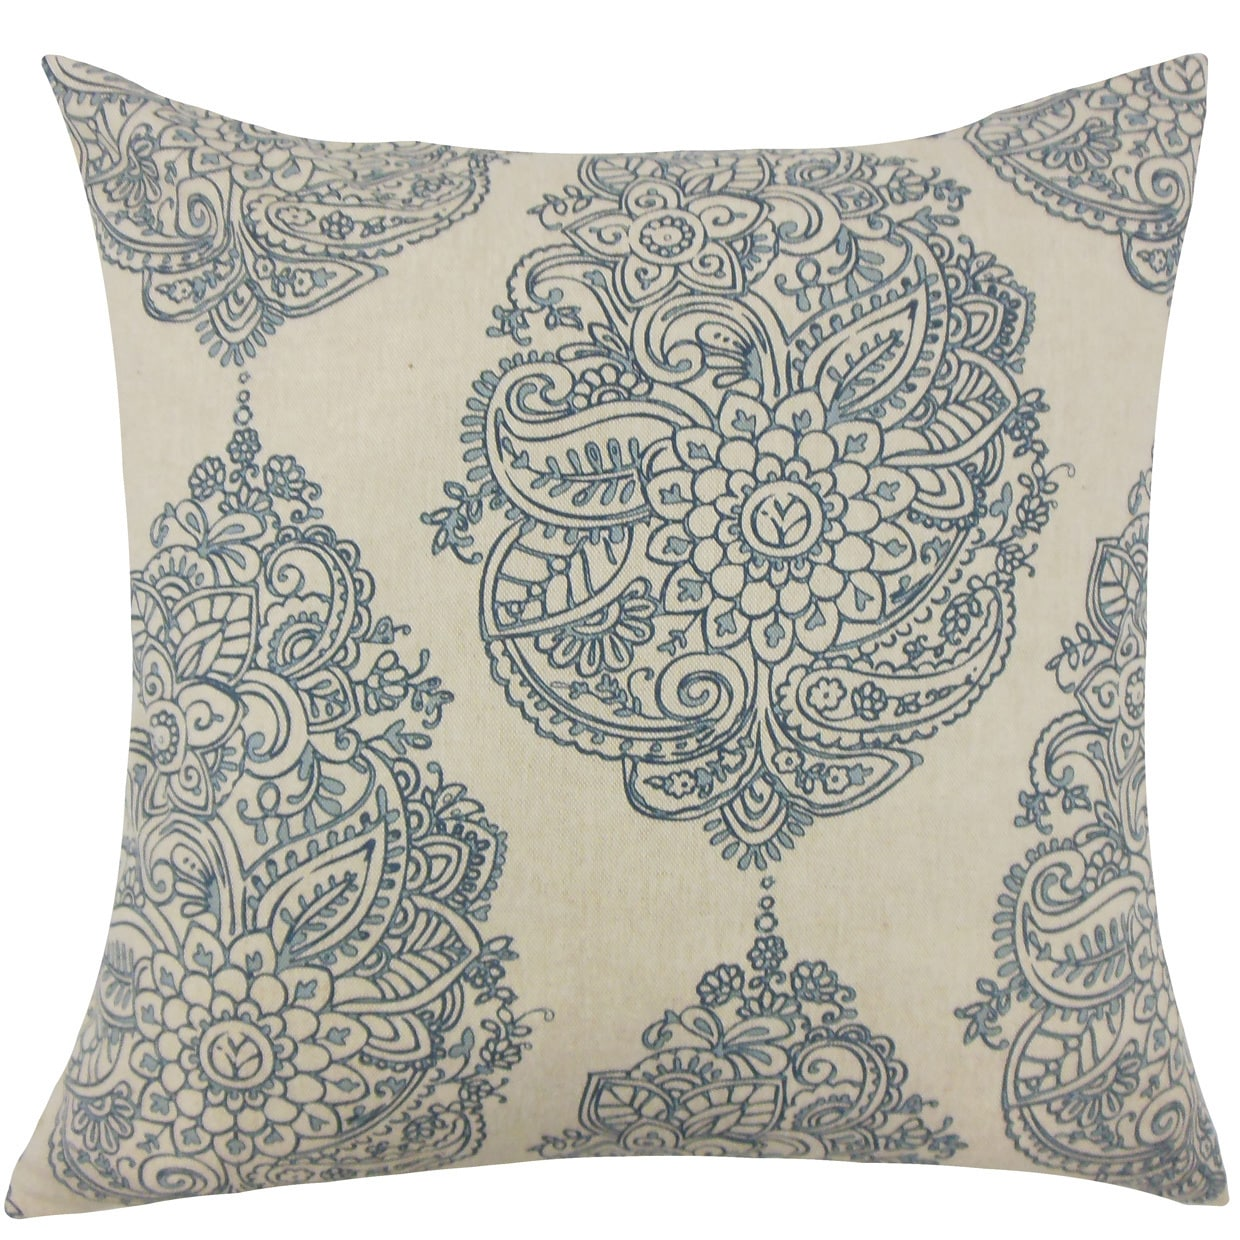 The Pillow Collection Lanza Damask 24-inch Down Feather Throw Pillow - Blue